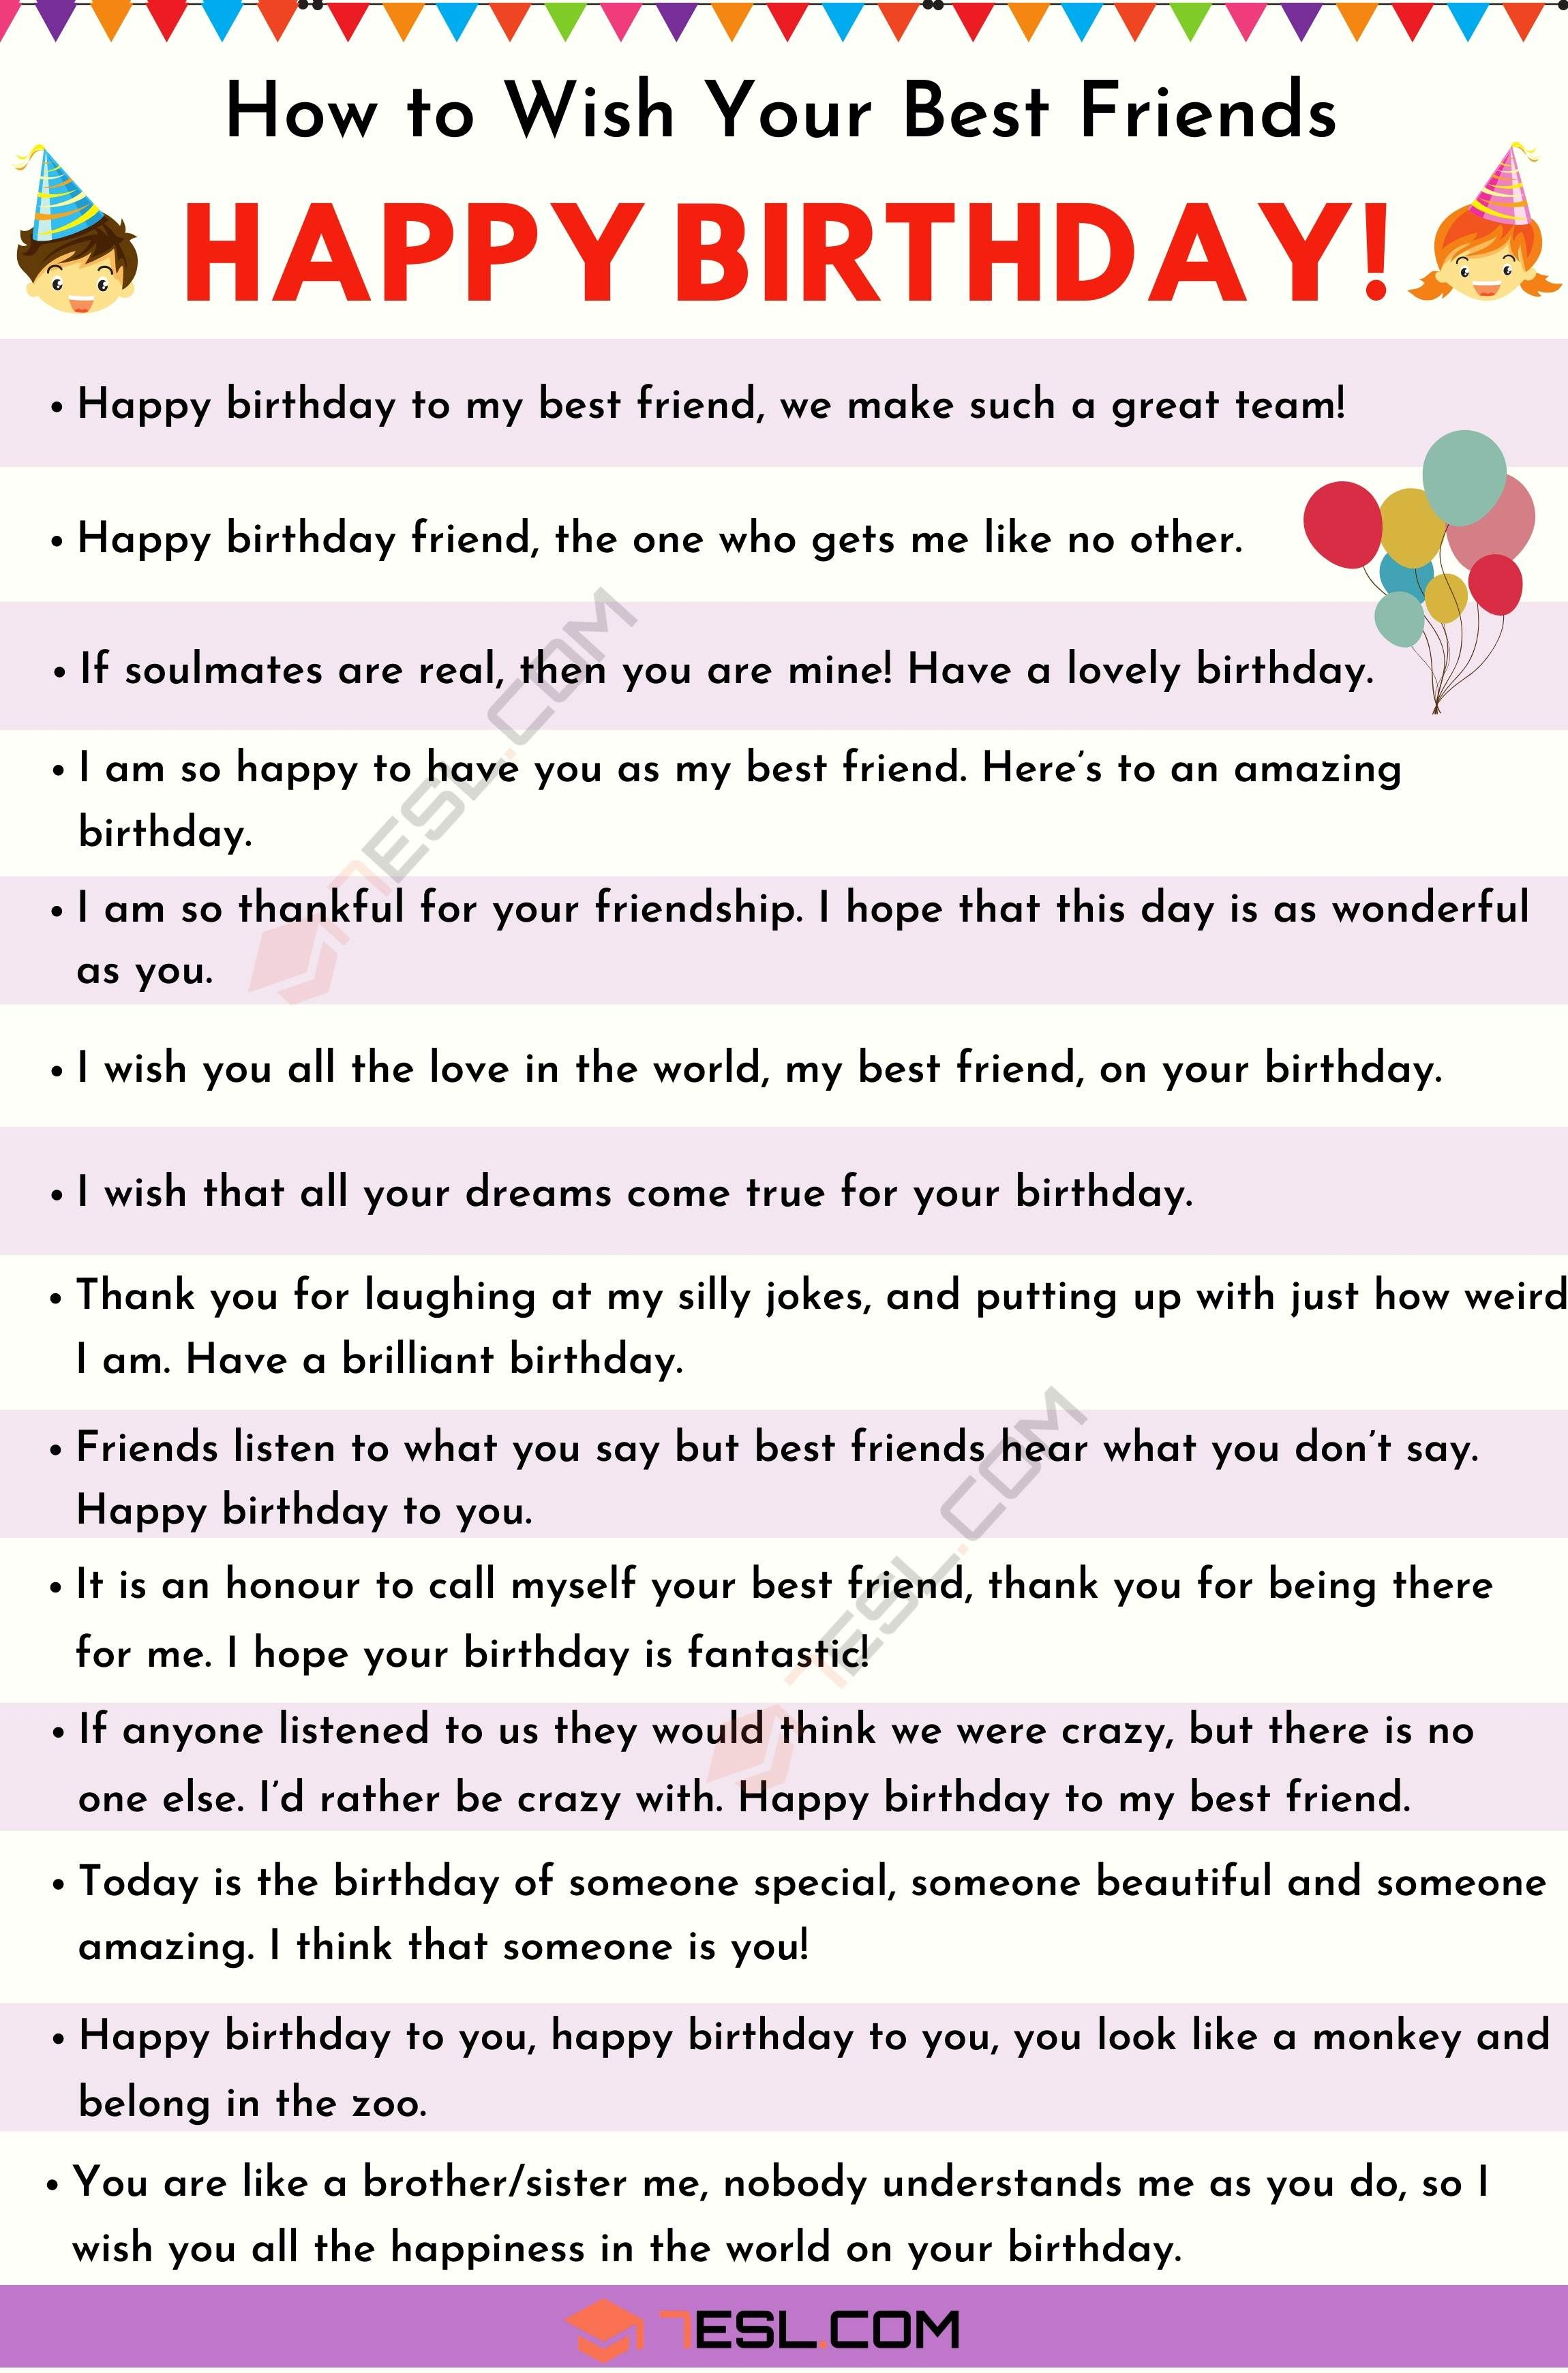 Happy Birthday Friend 35 Heartfelt And Funny Birthday Wishes F In 2020 Birthday Wishes For Friend Happy Birthday Quotes For Friends Happy Birthday Best Friend Quotes